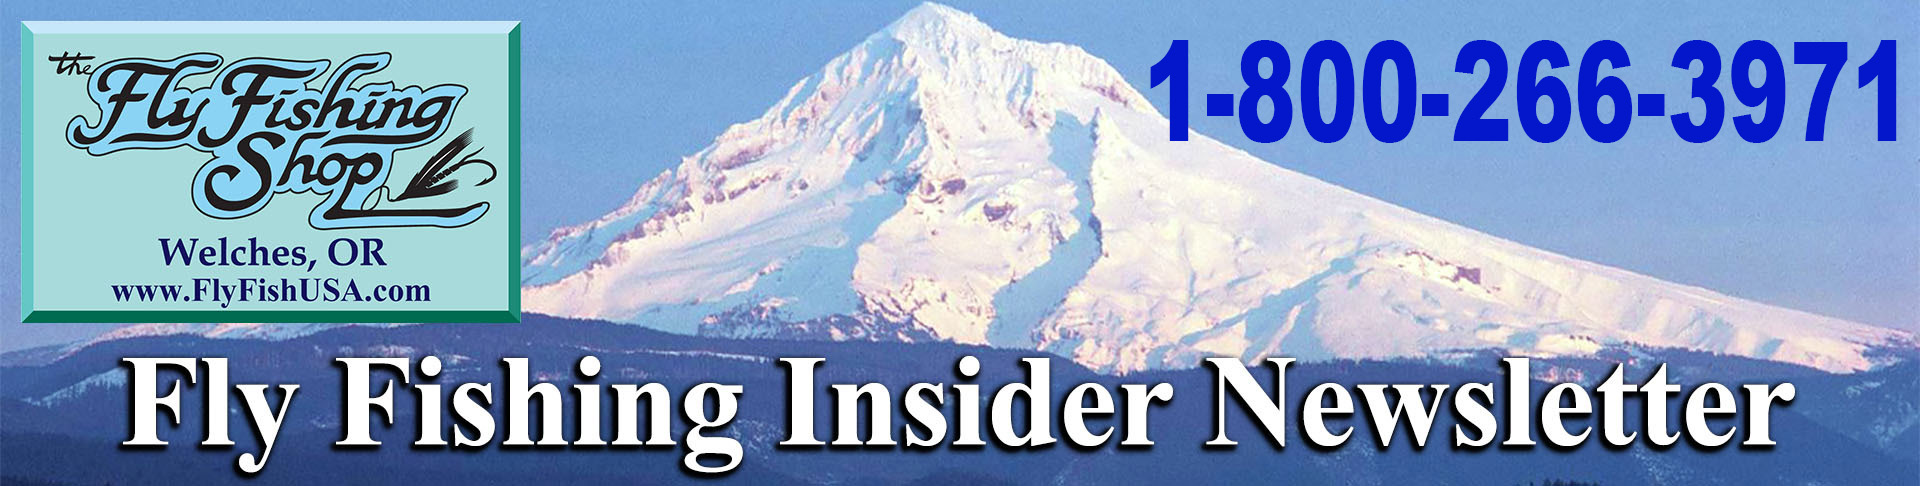 Fly Fishing Insider Newsletter masthead